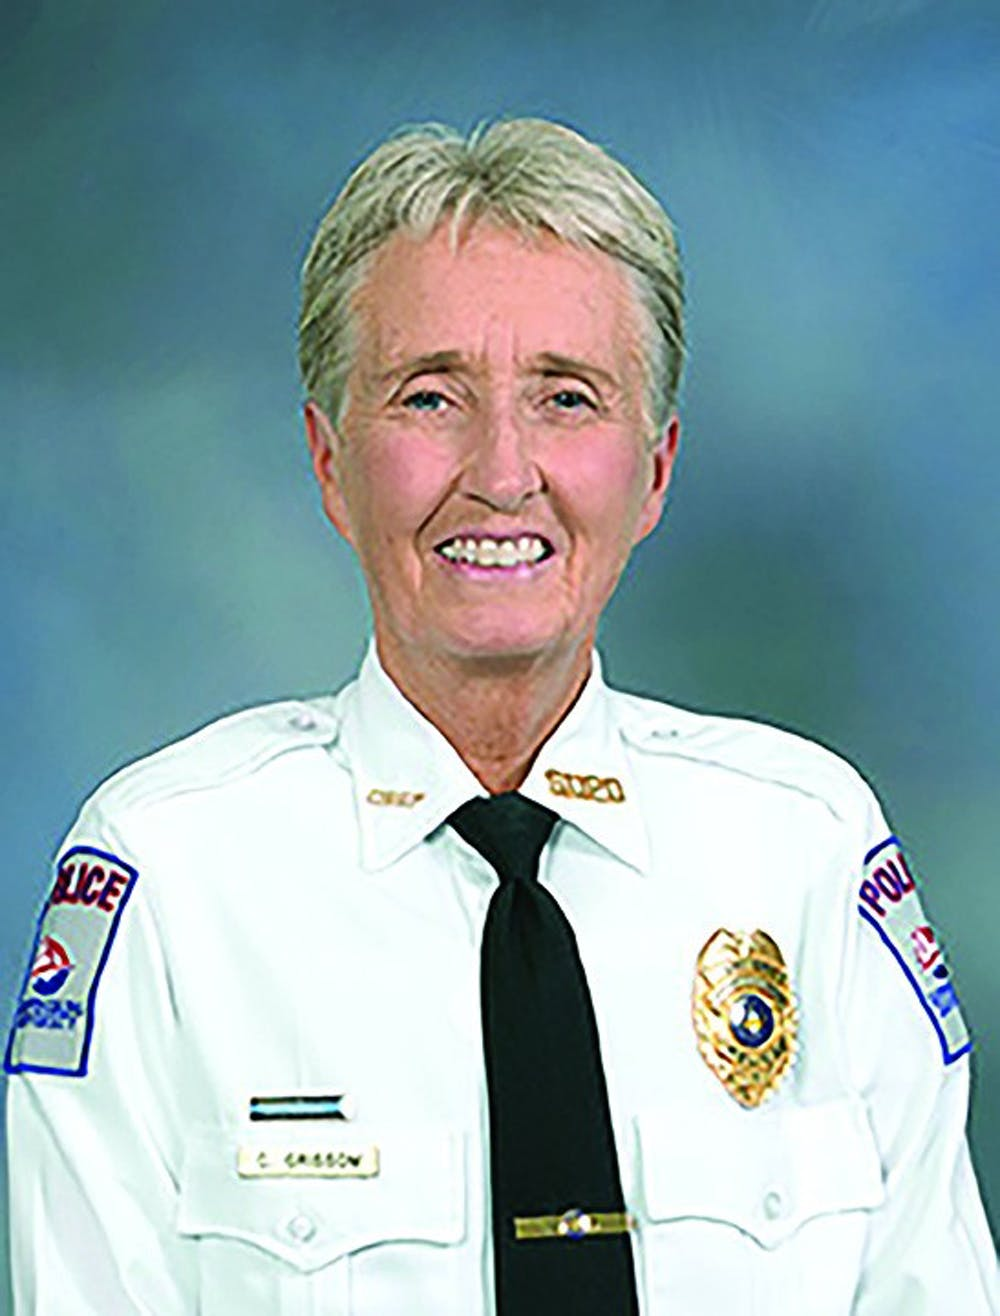 SU police chief to retire after years of service